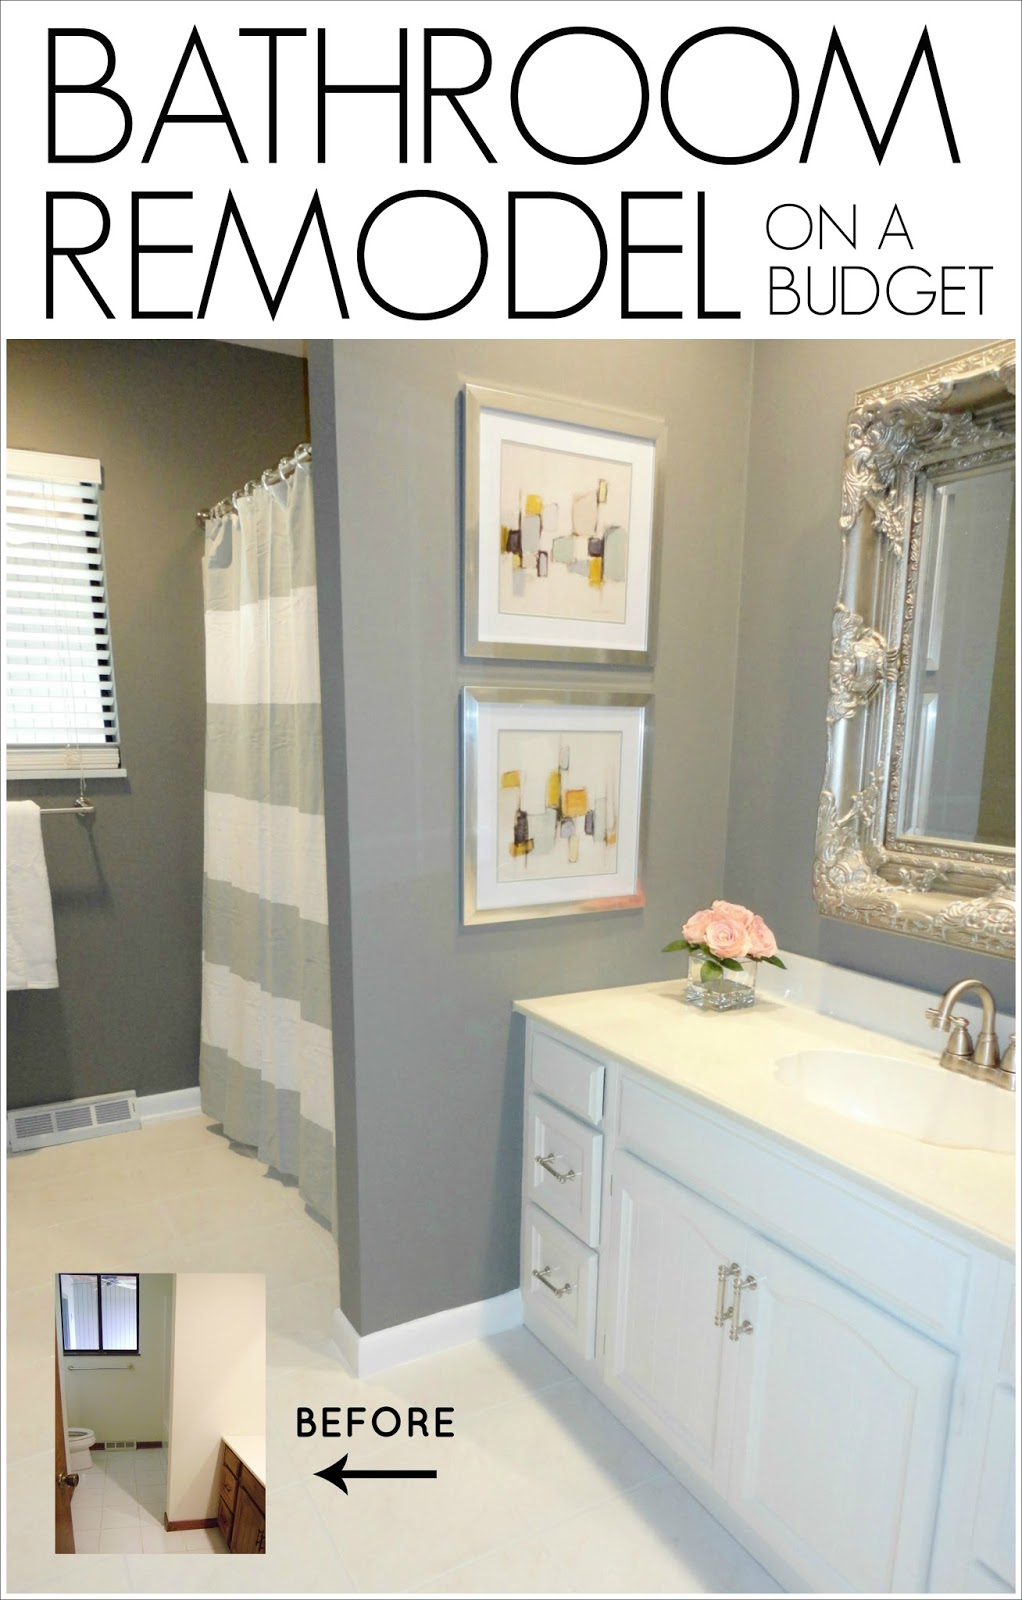 Diy Bathroom Remodel Ideas livelovediy: diy bathroom remodel on a budget